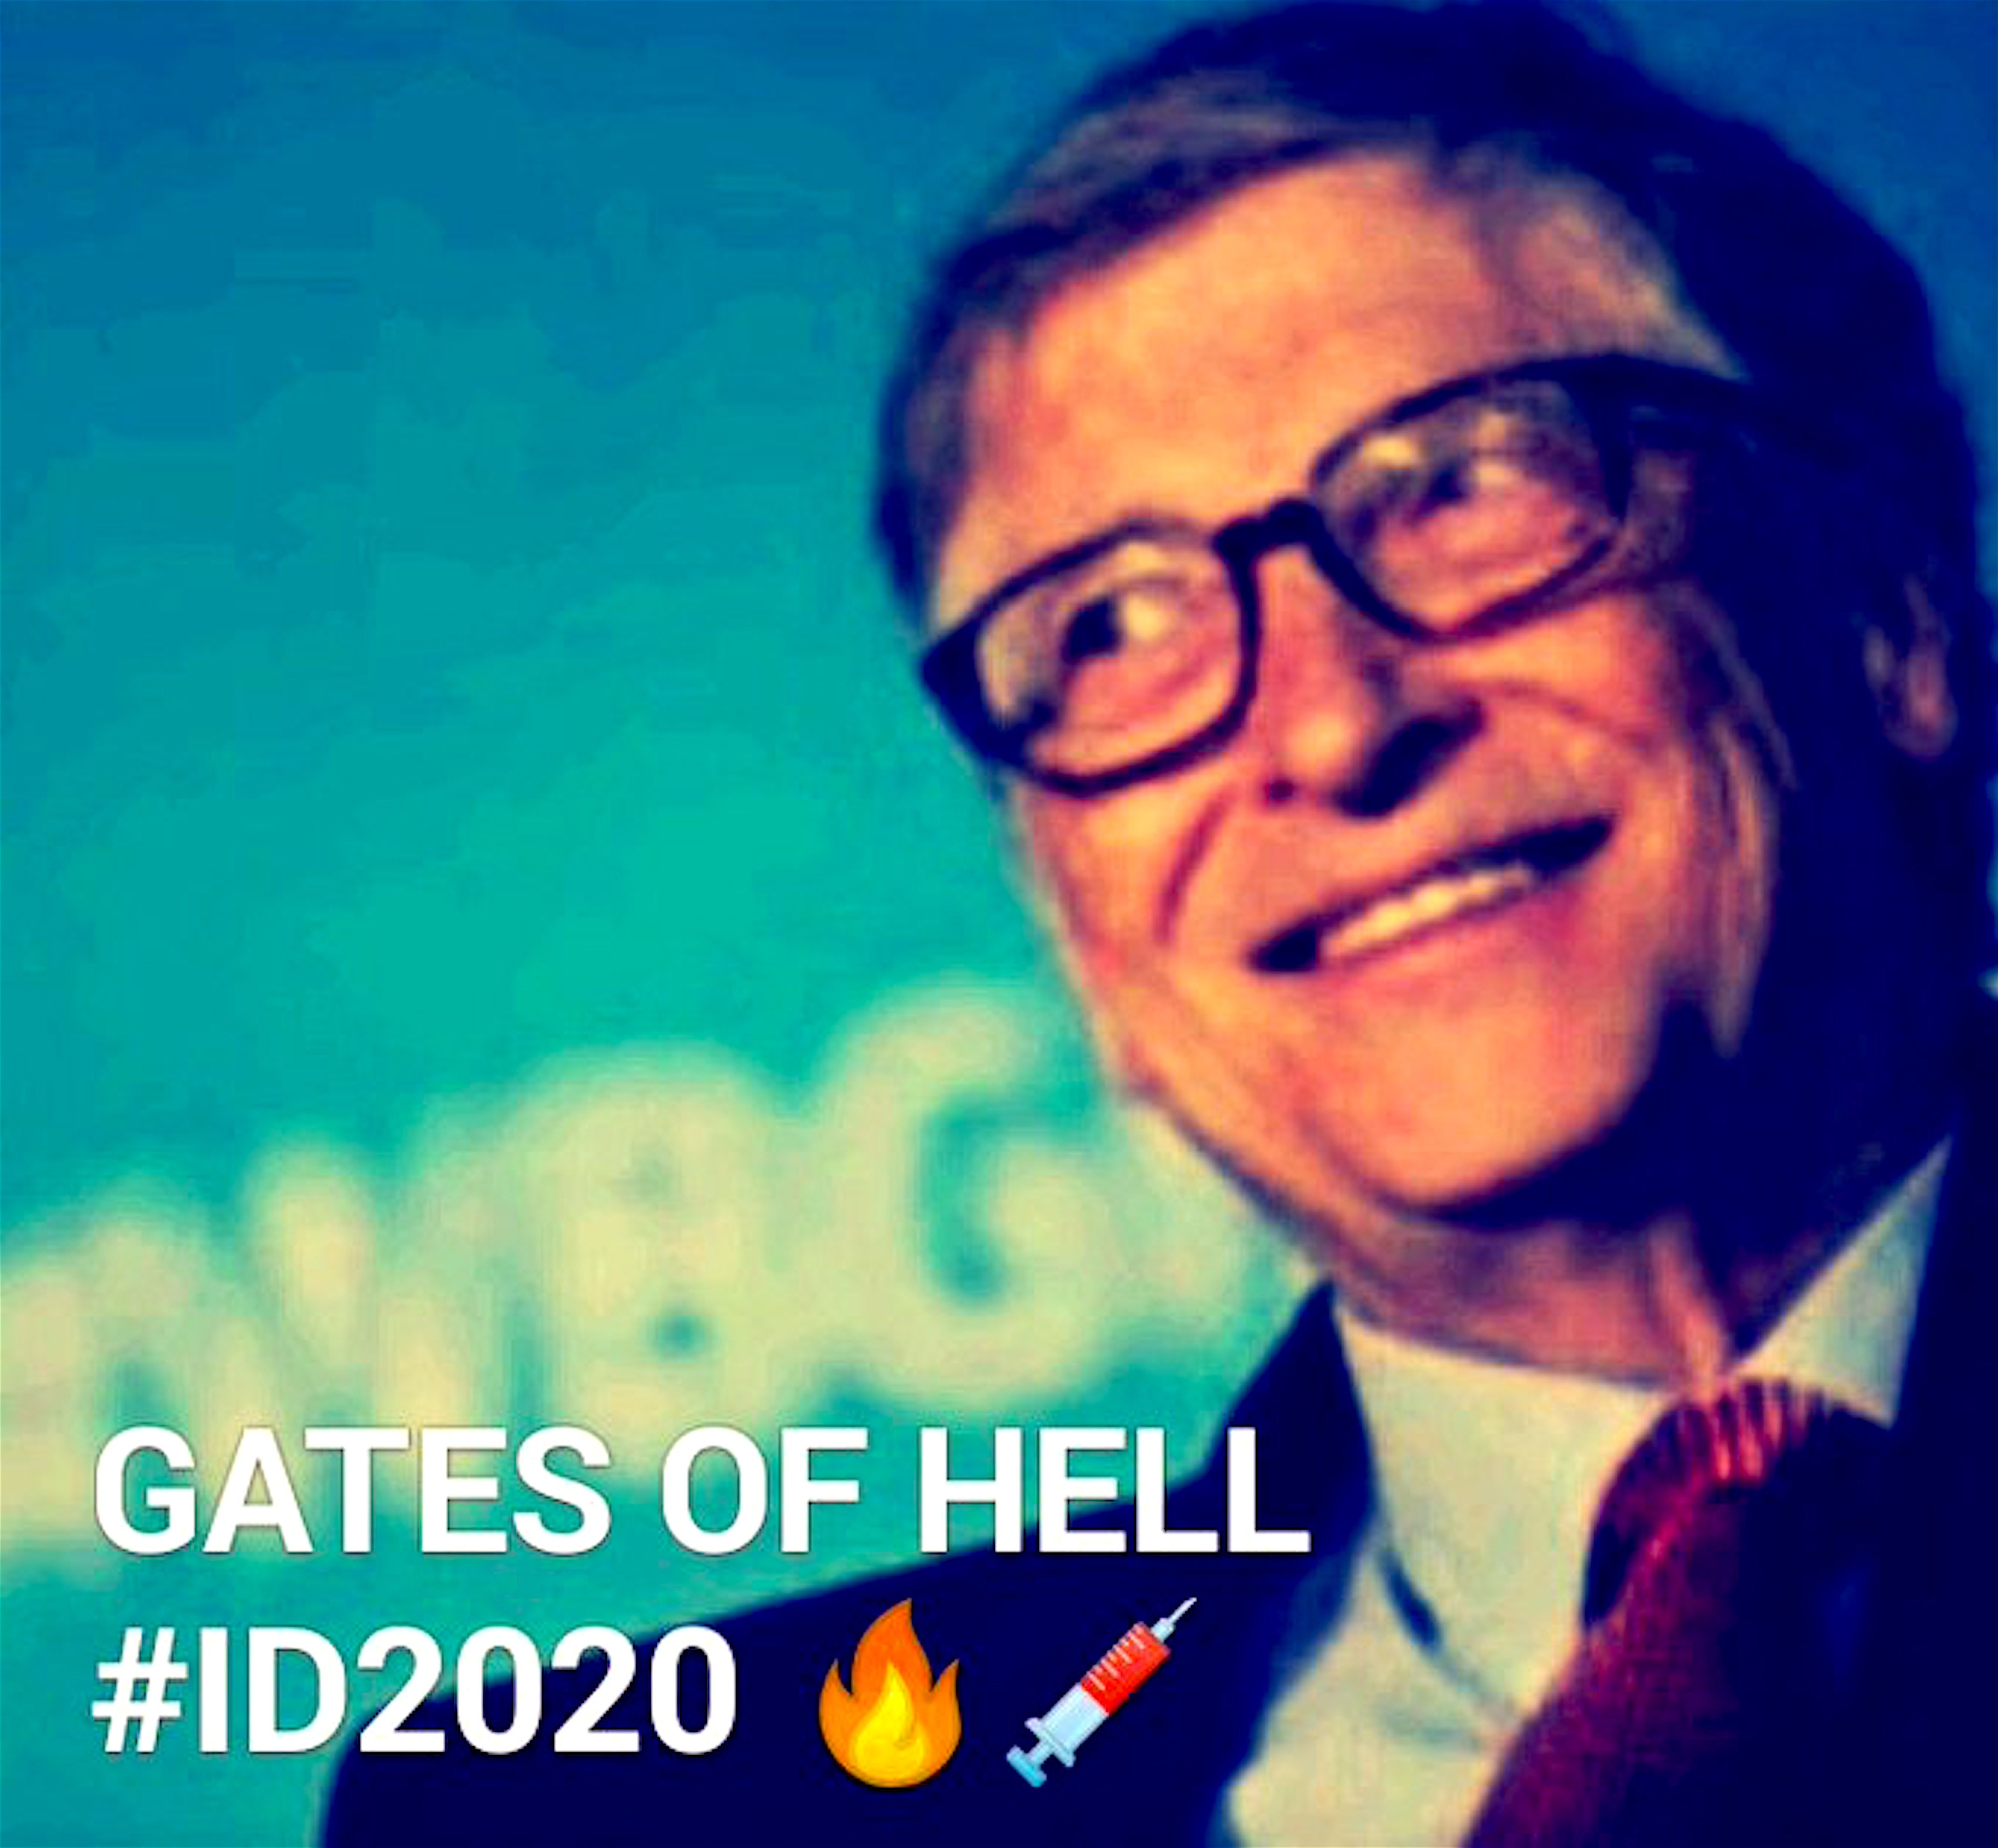 Gates of Hell (foto Twitter)